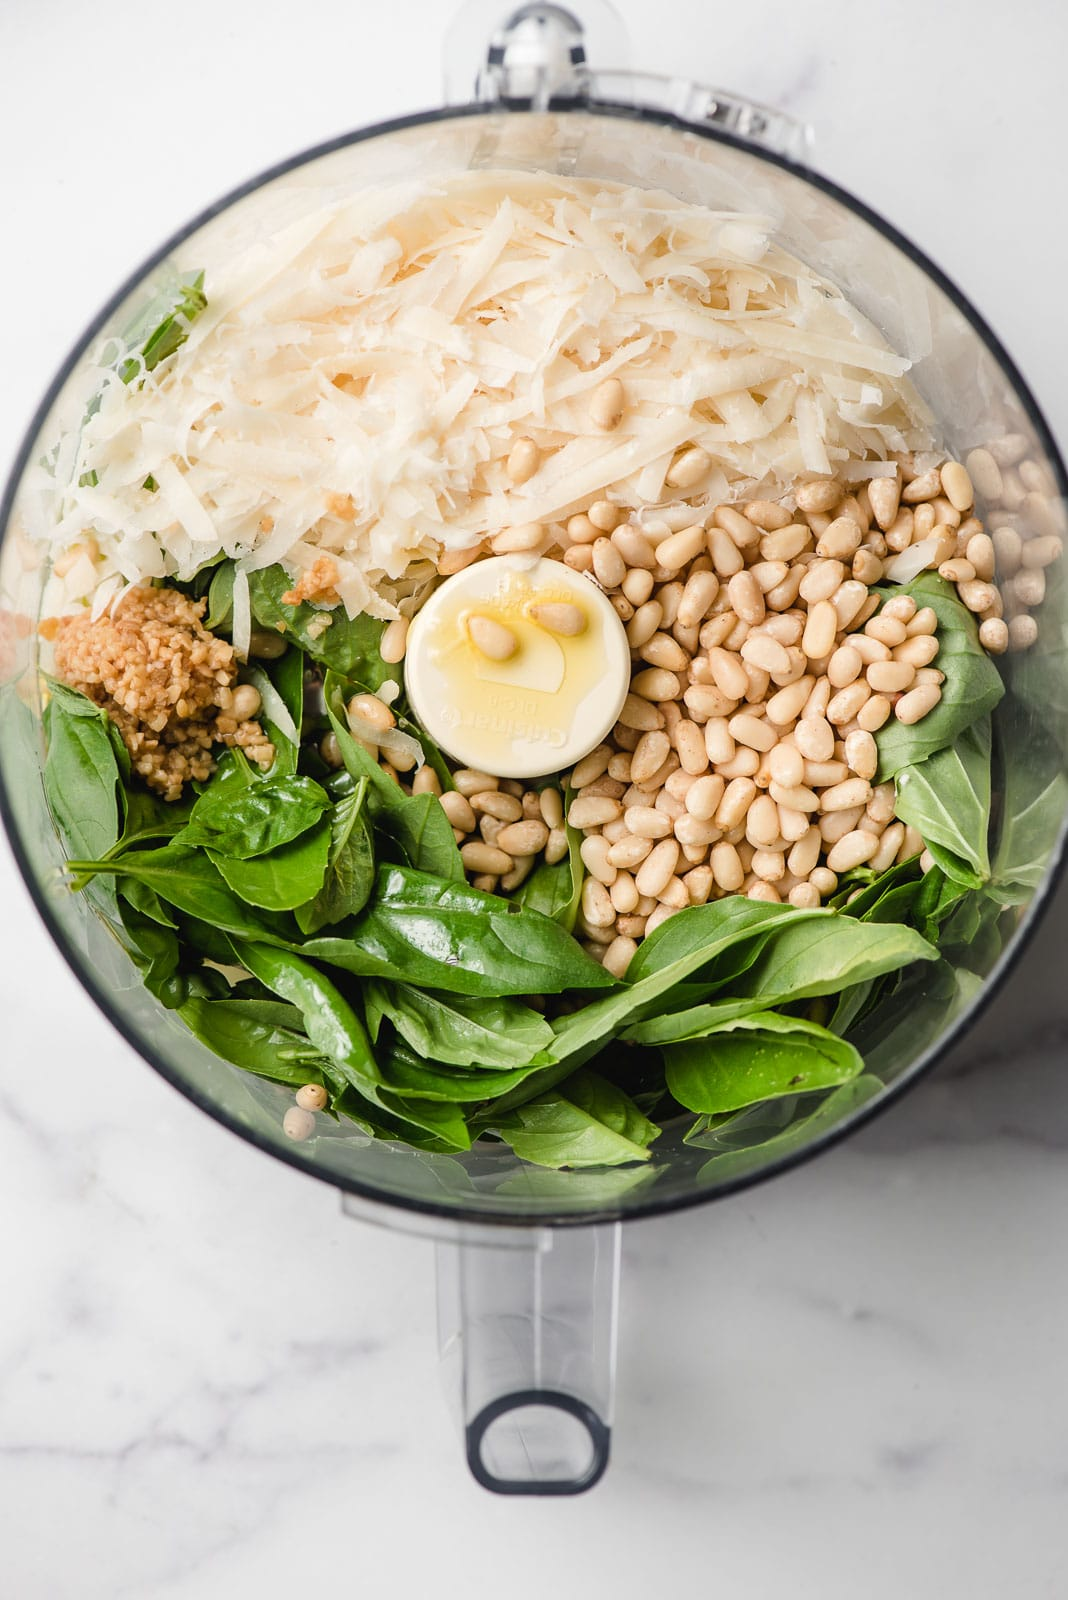 Basil, pine nuts, garlic, and Parmesan cheese shown in an open food processor bowl.